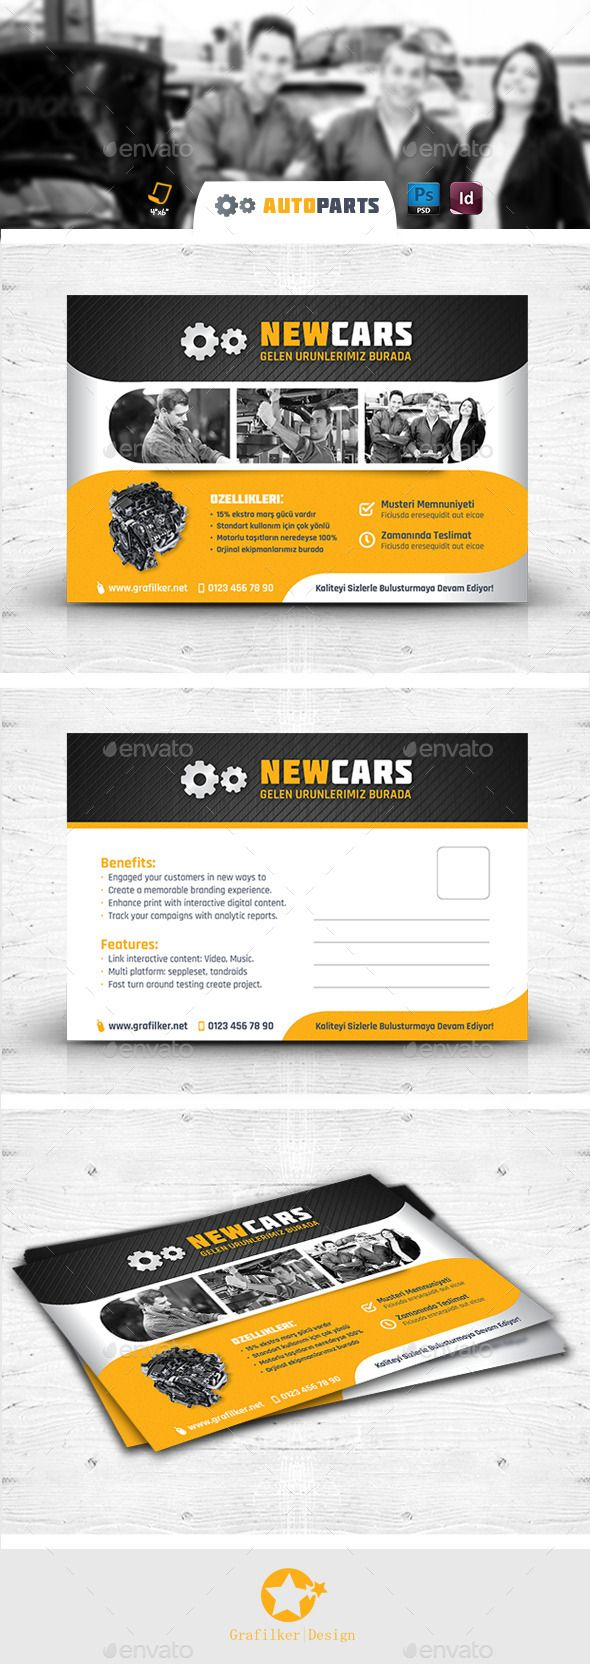 Automobile Service Postcard Templates — Photoshop PSD #brakes #automobile service • Available here → https://graphicriver.net/item/automobile-service-postcard-templates/12460838?ref=pxcr